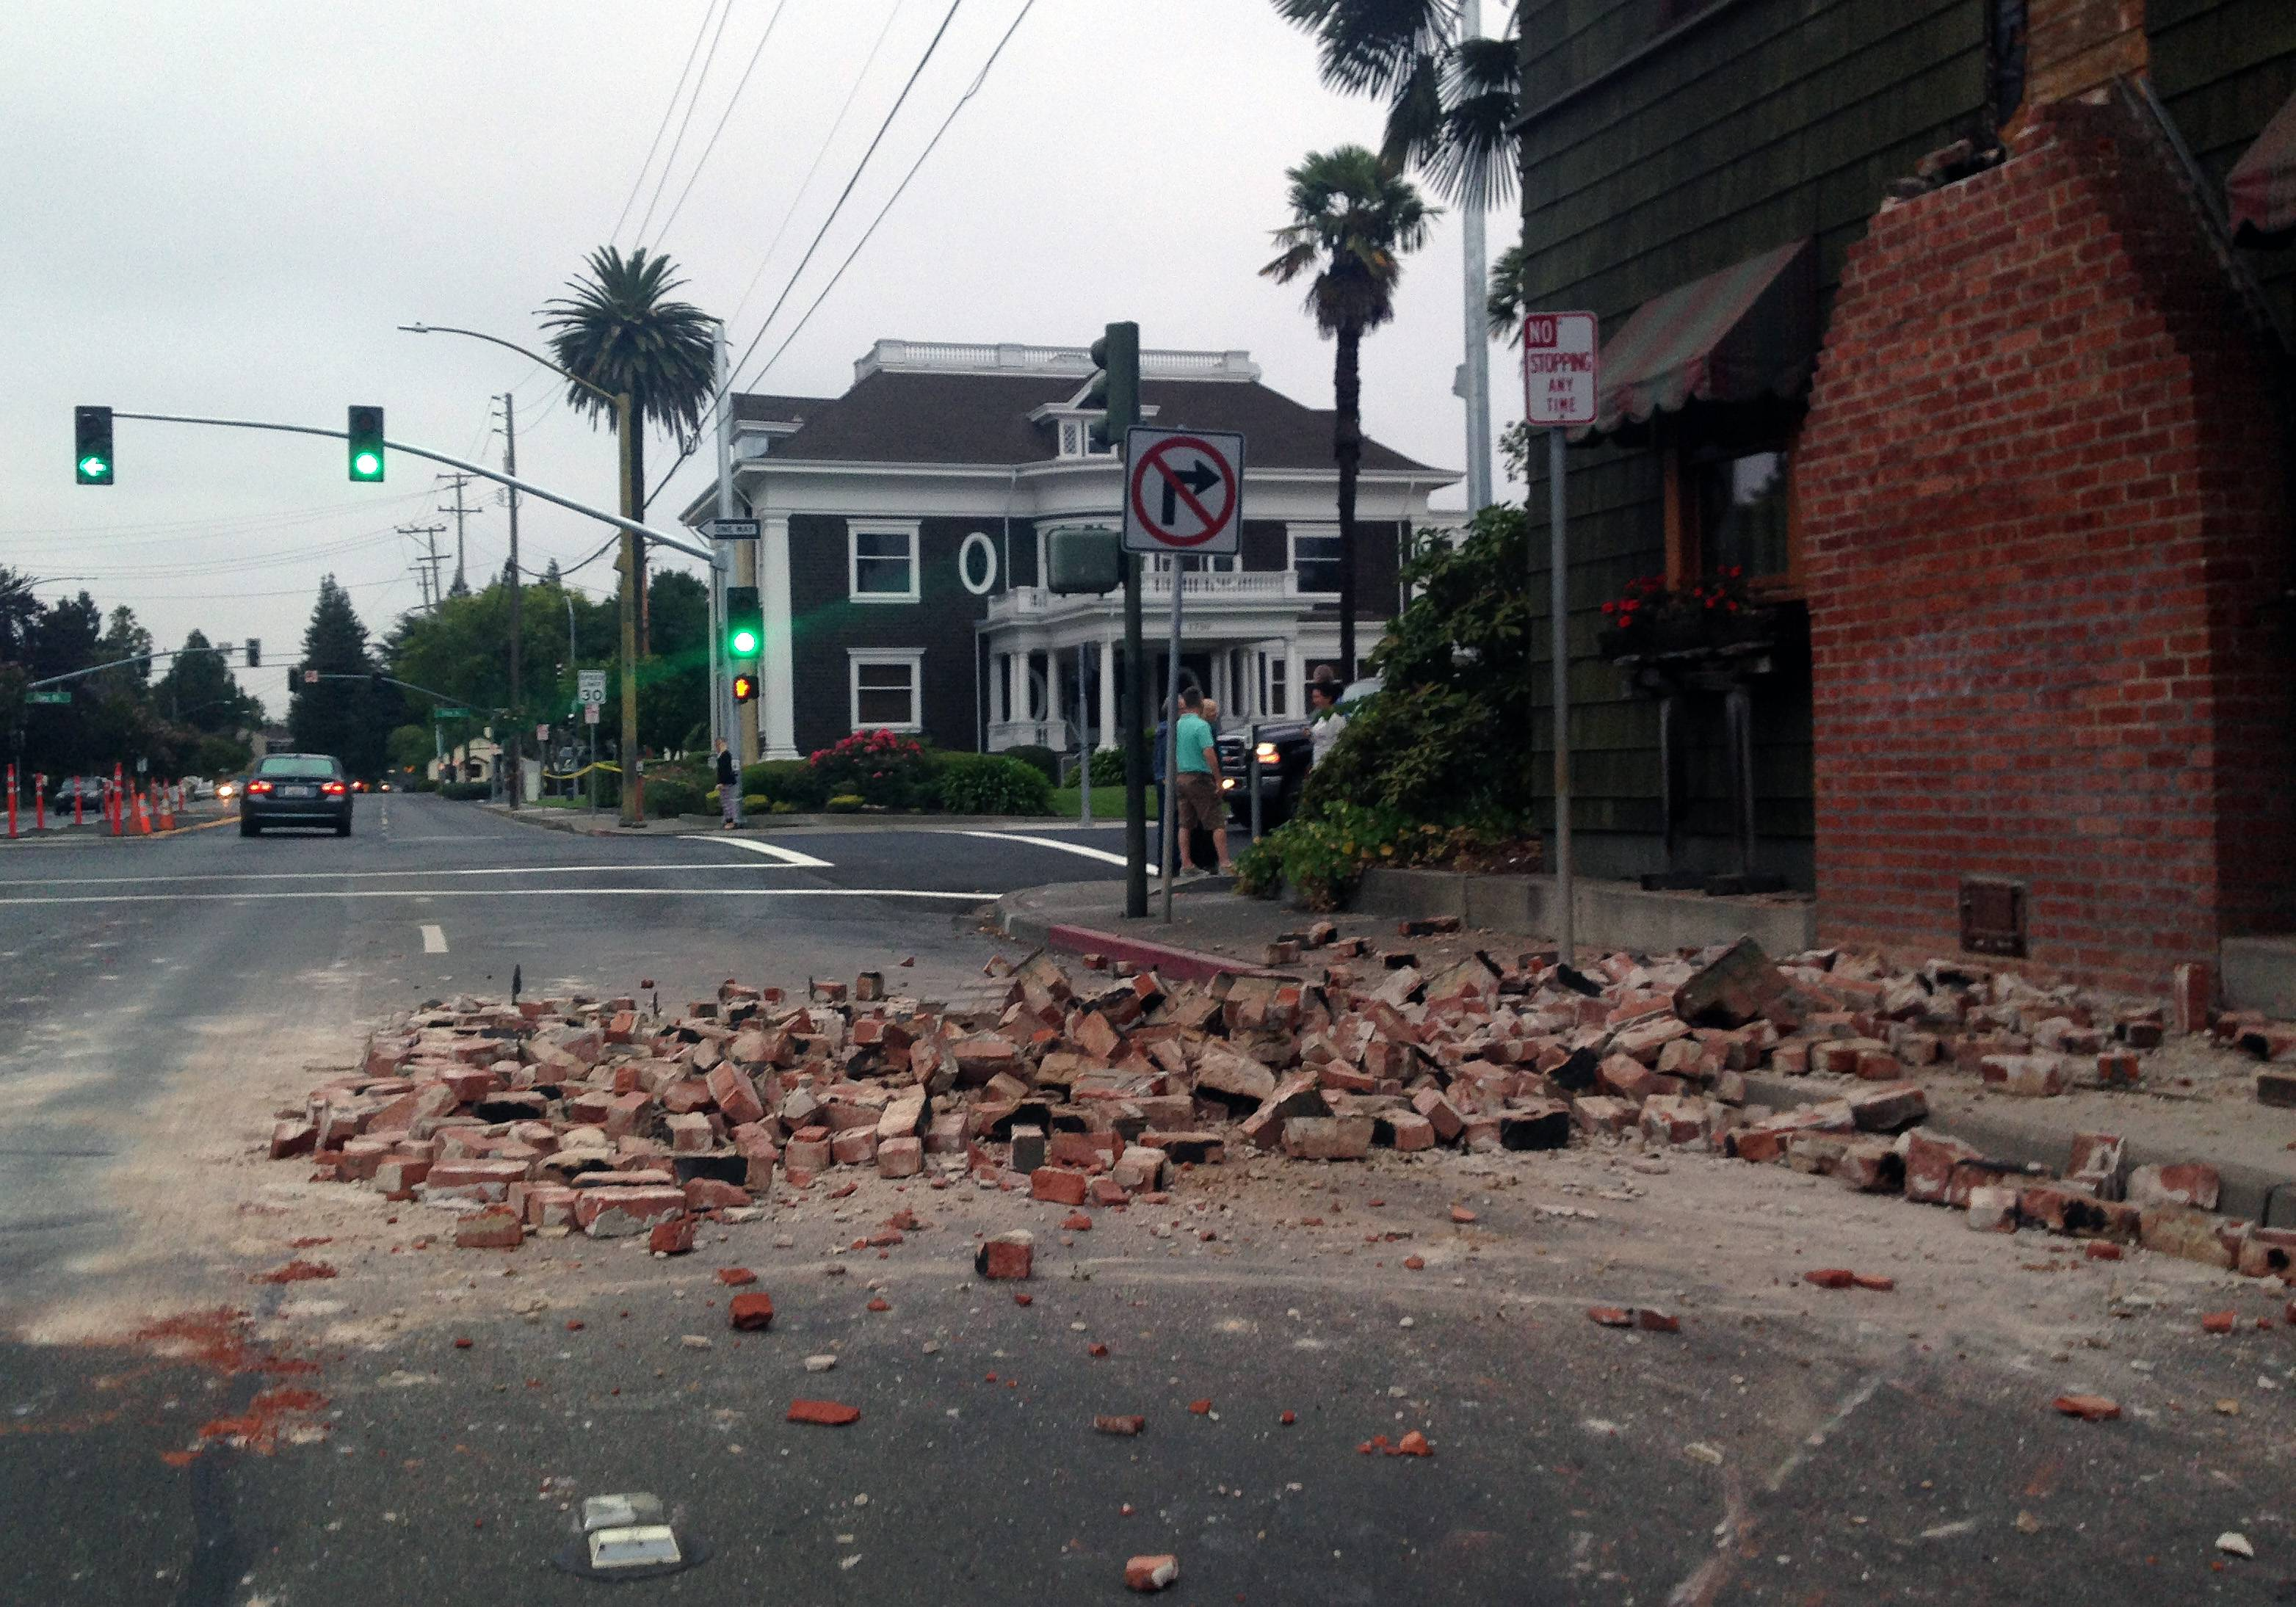 People walk past a tumbled mannequin and broken storefront window on First Street following an earthquake Sunday in Napa, Calif. A large earthquake rolled through California's northern Bay Area early Sunday, damaging some buildings, igniting fires, knocking out power to tens of thousands and sending residents running out of their homes in the darkness.